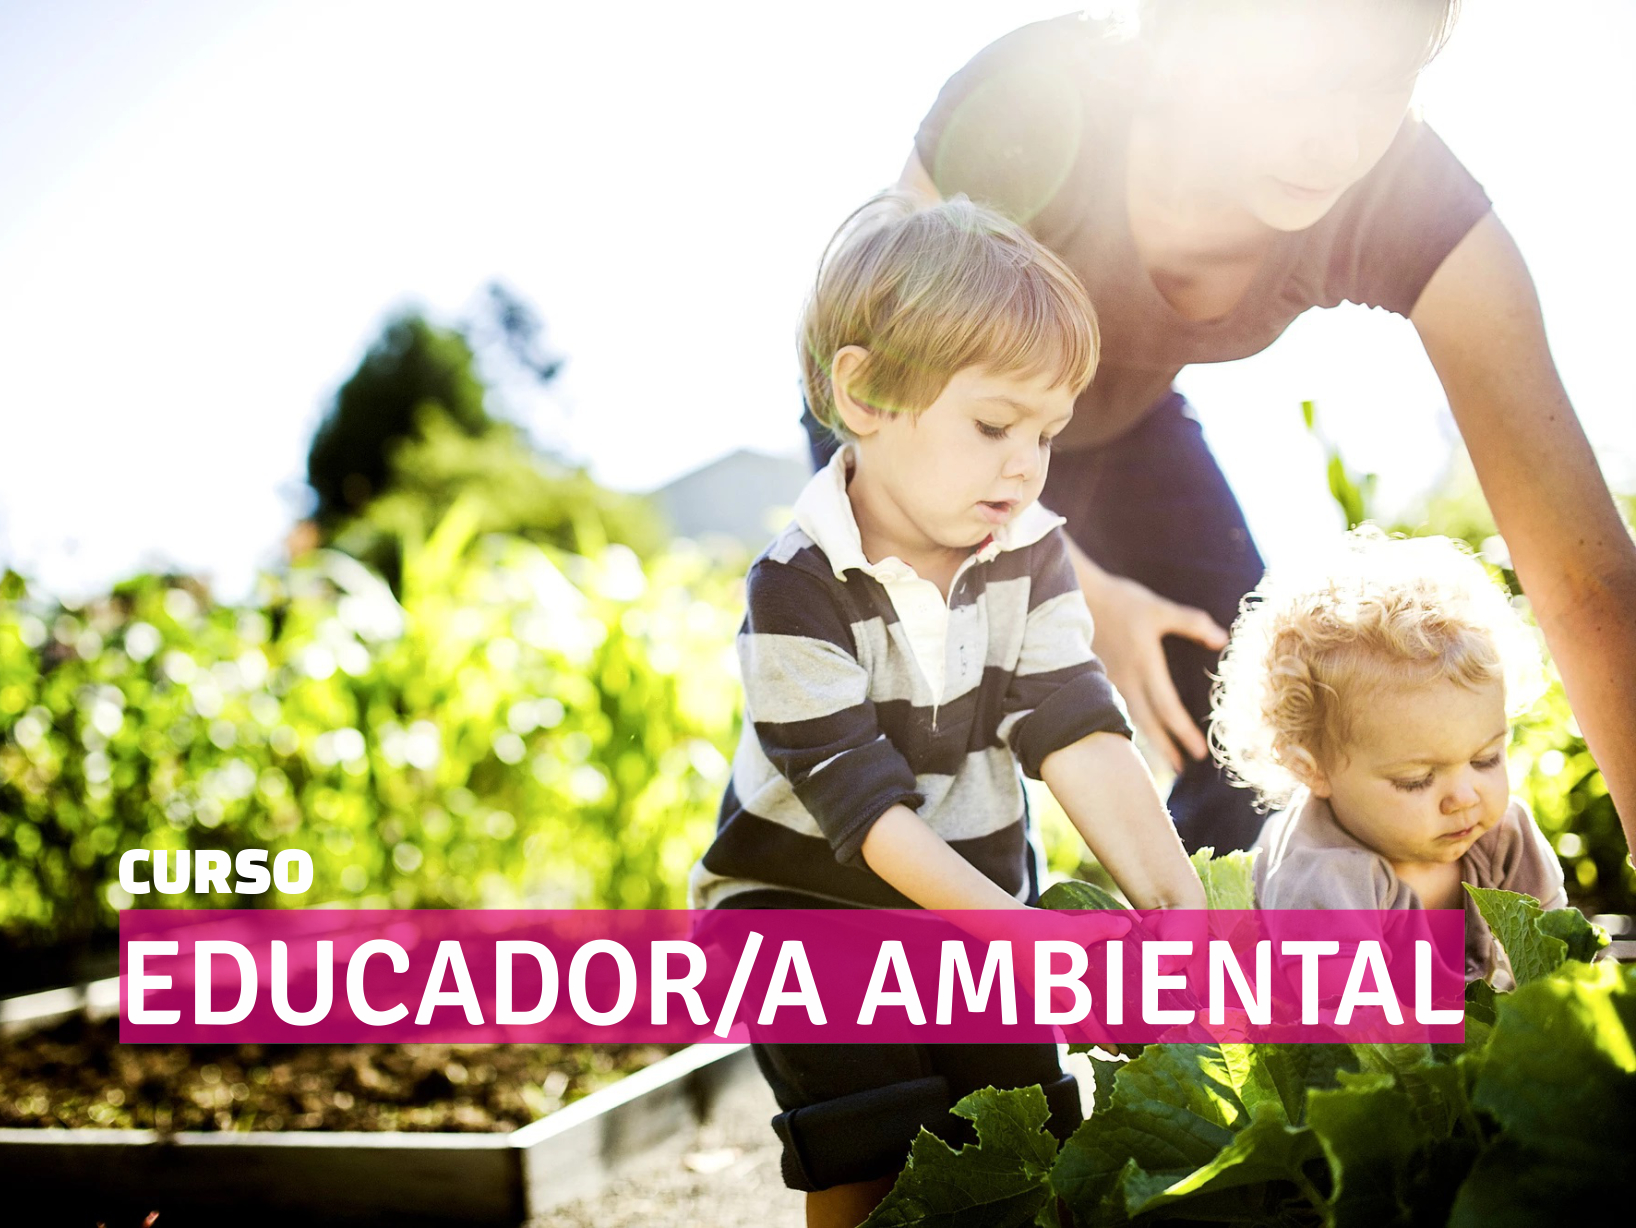 Curso EDUCADOR AMBIENTAL